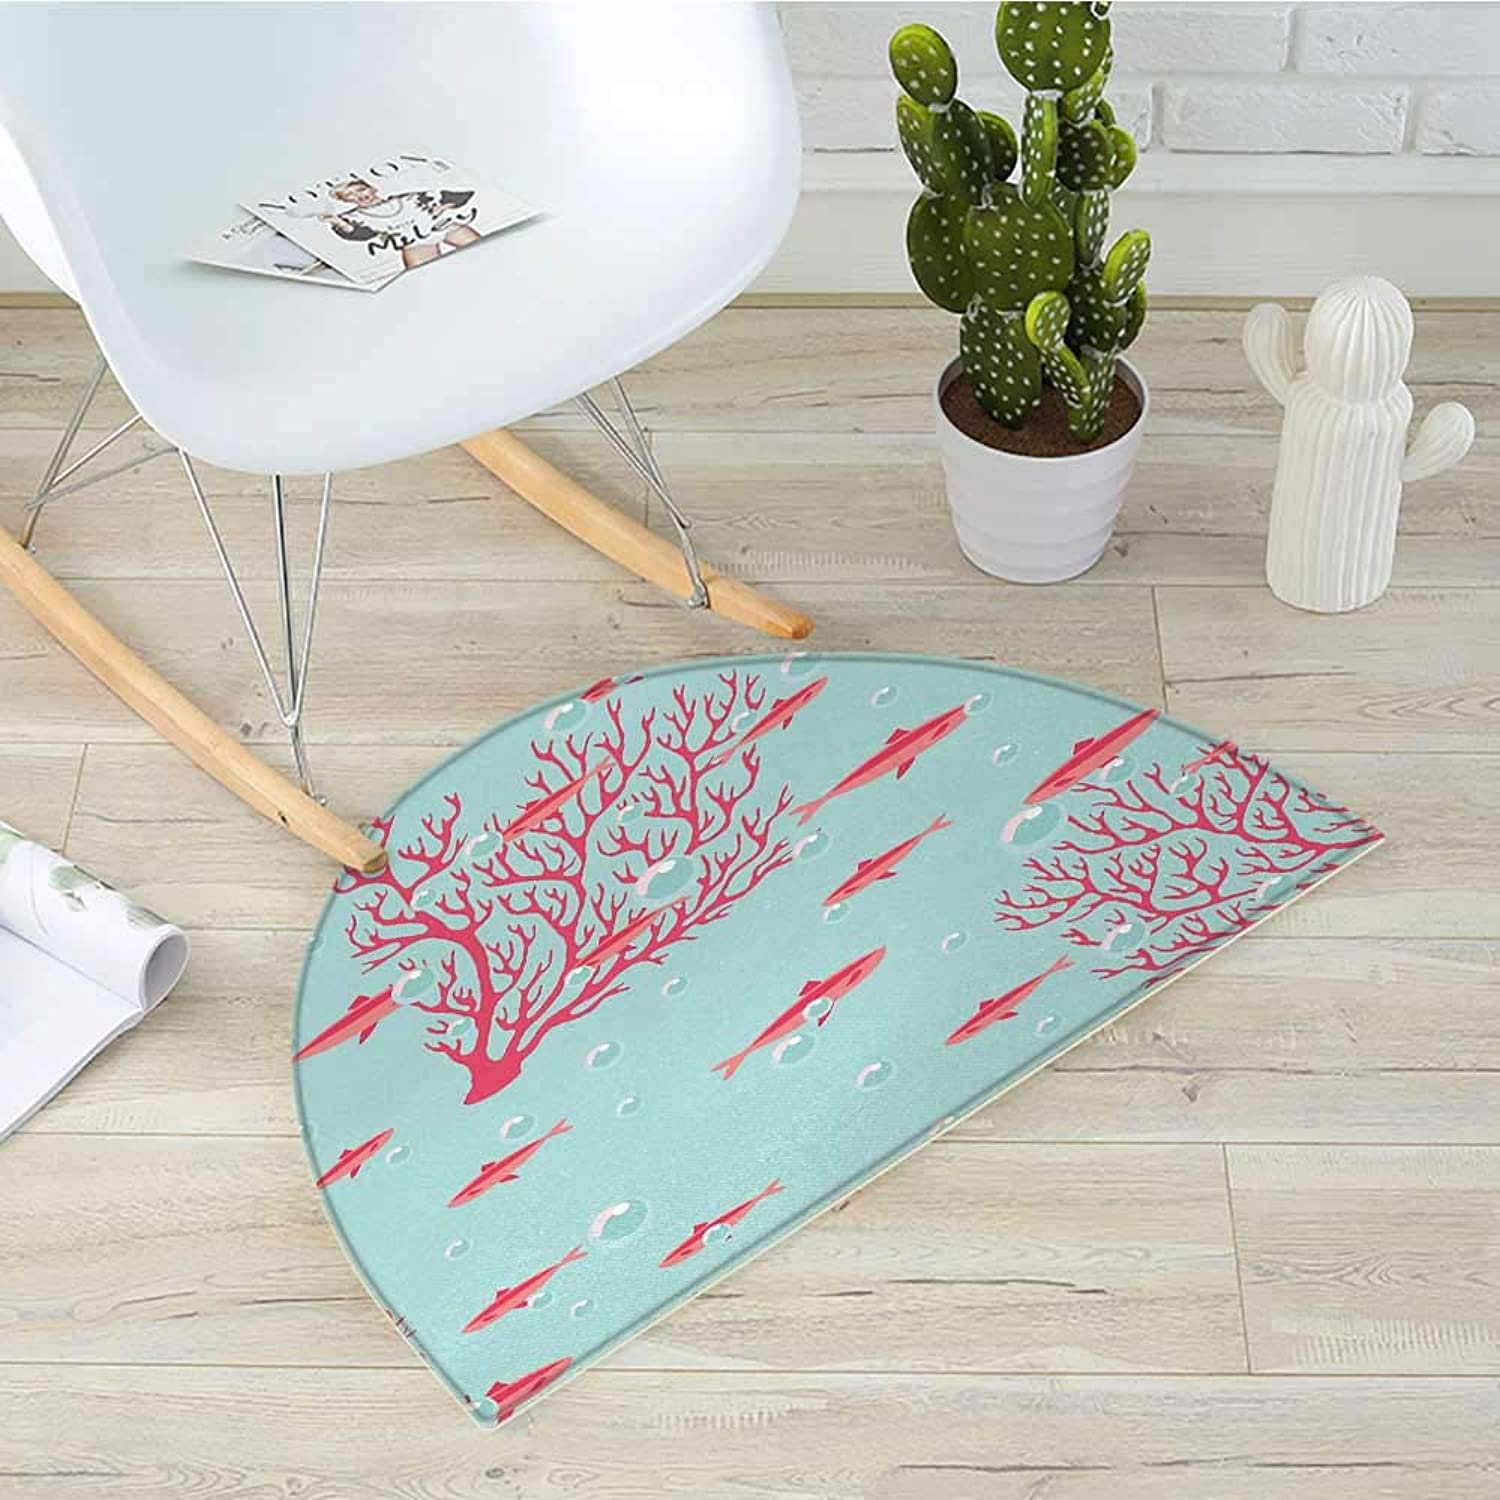 Coral Semicircle Doormat Aquatic Pattern with Little Cute Fishes and Coral Reef Bubbles Water Halfmoon doormats H 23.6  xD 35.4  Coral Dark Coral Baby bluee